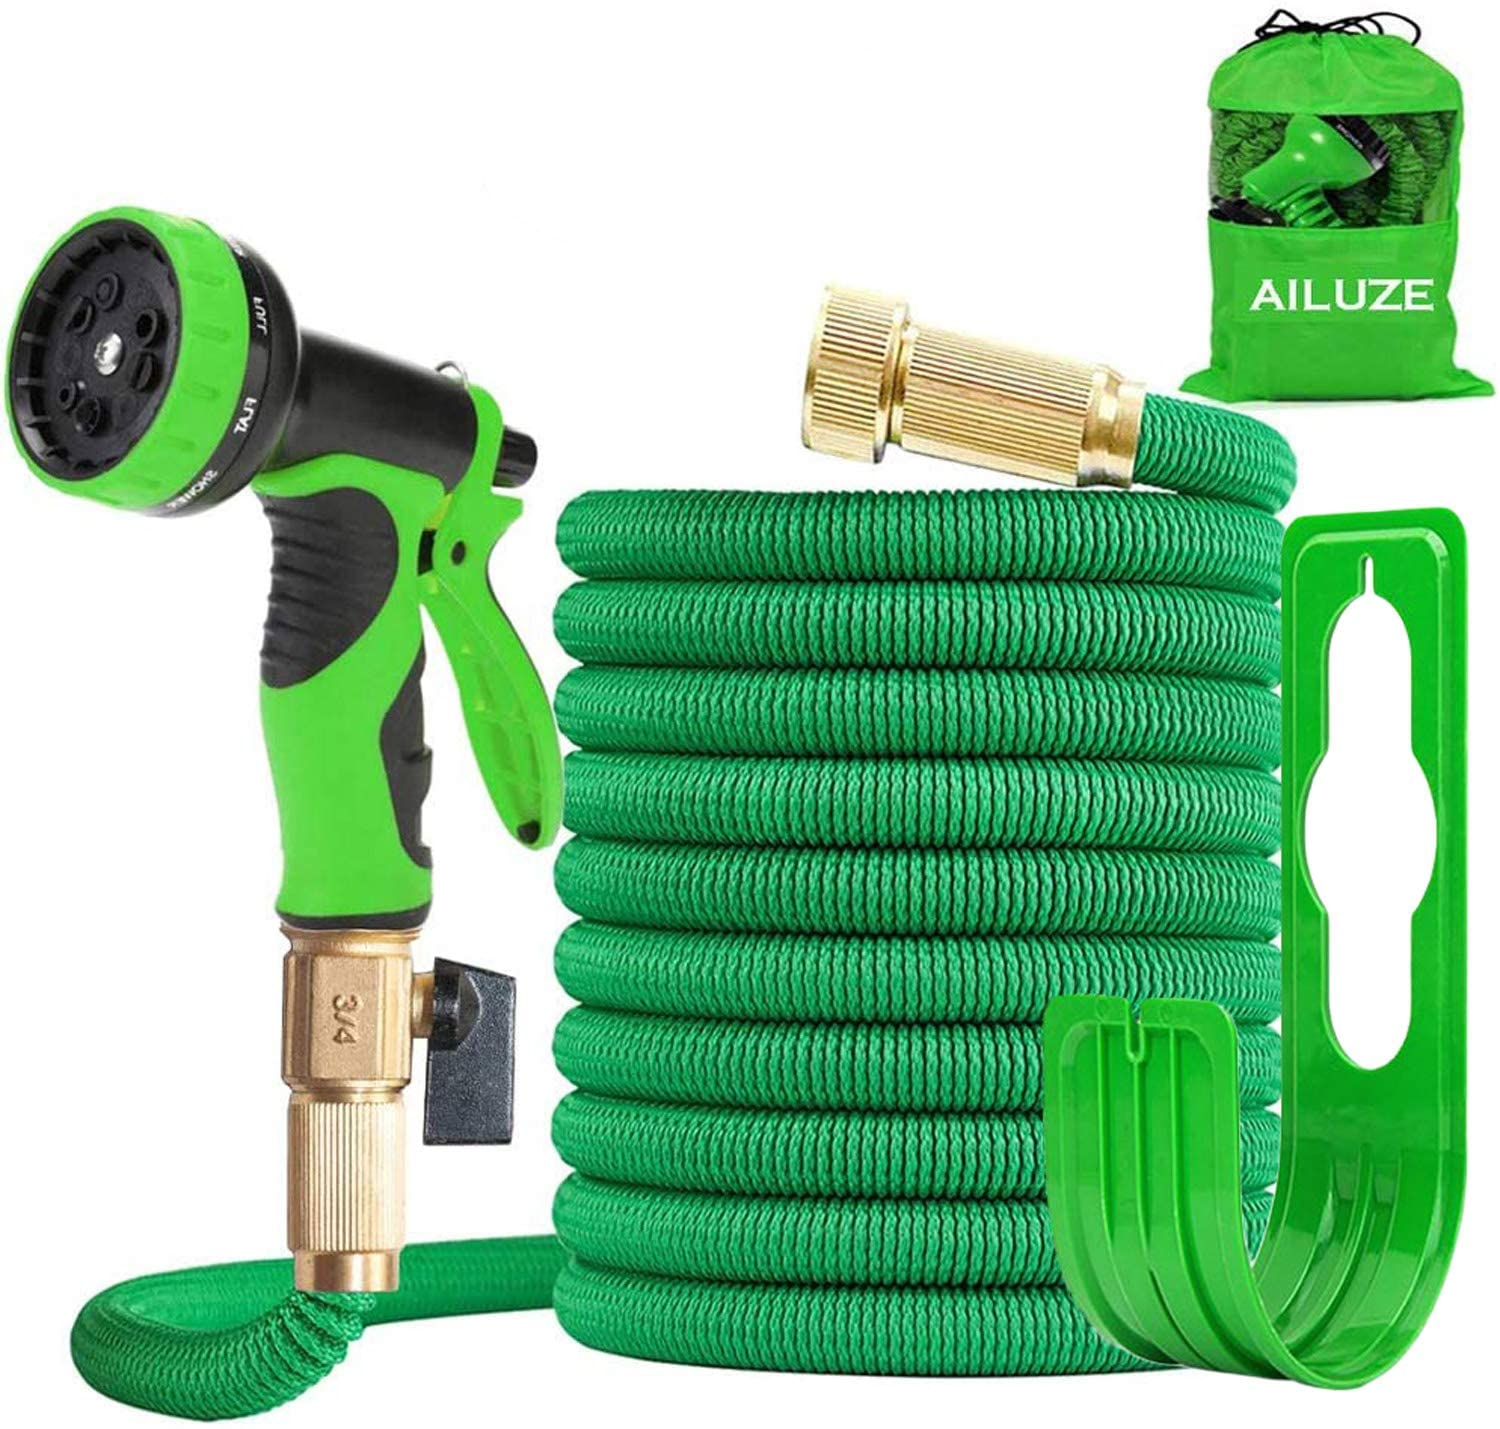 Sale special Super beauty product restock quality top! price AILUZE Expandable Garden Water Hose Fl 50ft Pipe Expanding Magic